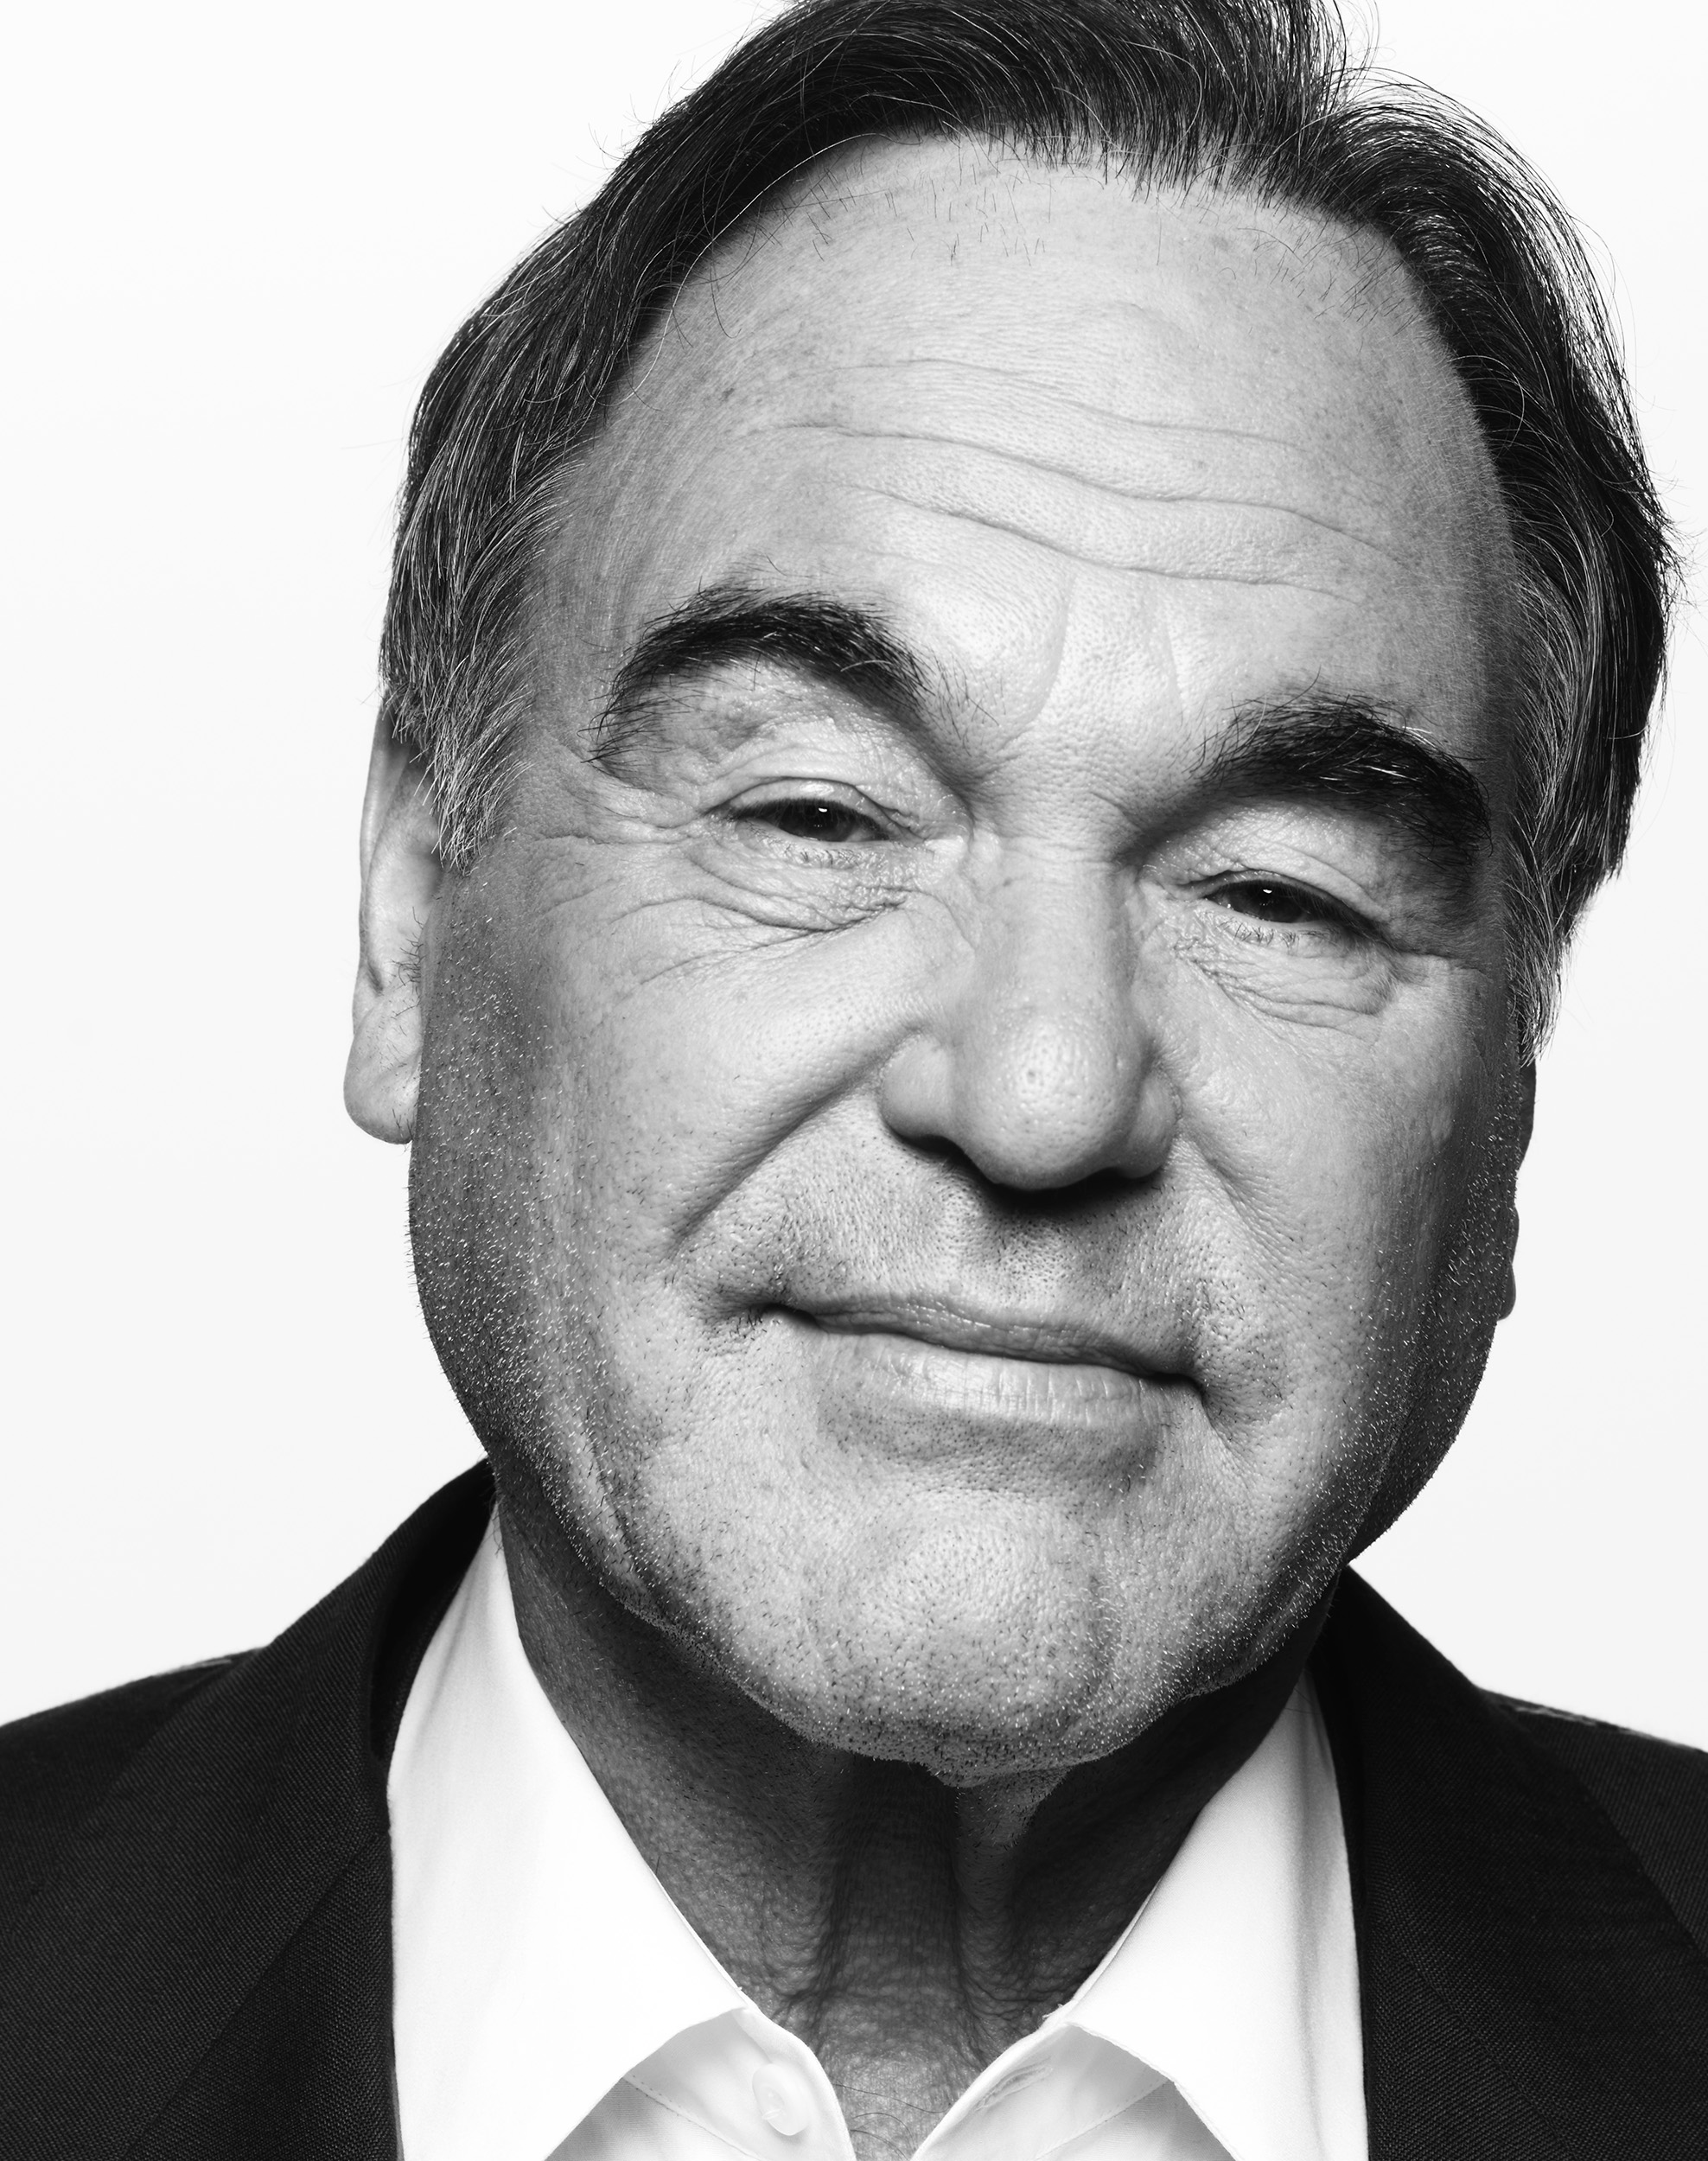 Oliver-Stone-by-Robert-Ascroft-004